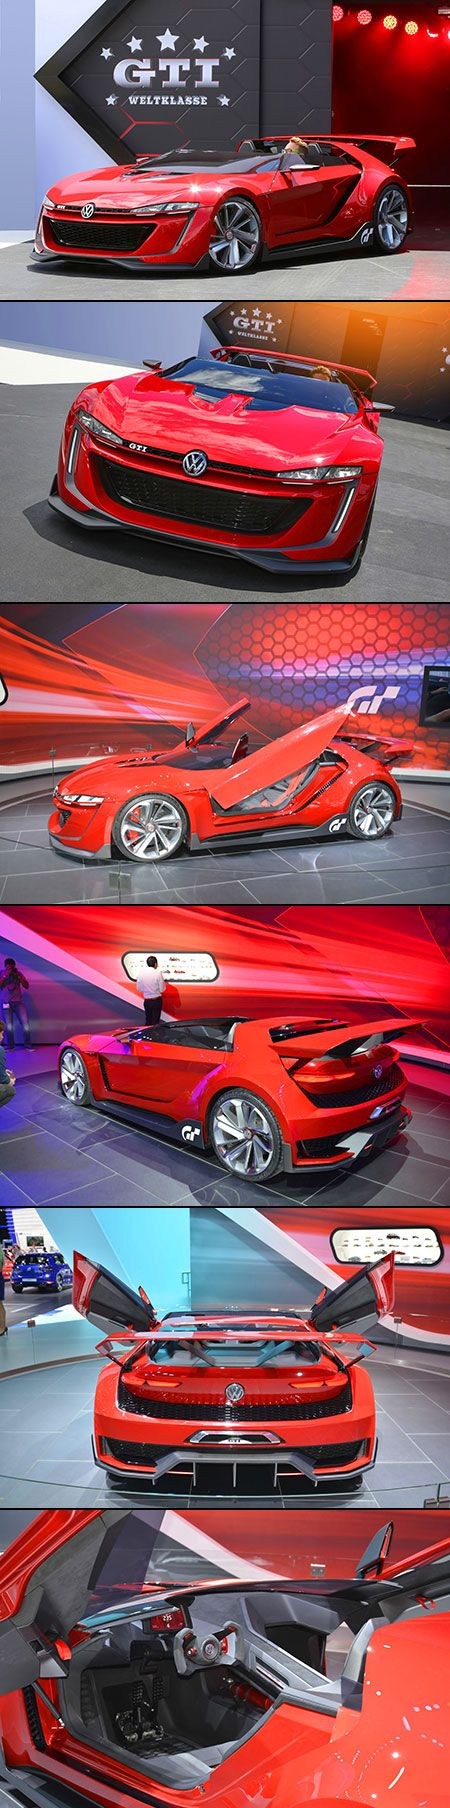 vw-concept-car-gti Low Storage Rates and Great Move-In Specials! Look no further Everest Self Storage is the place when you're out of space! Call today or stop by for a tour of our facility! Indoor Parking Available! Ideal for Classic Cars, Motorcycles, ATV's & Jet Skies. Make your reservation today! 626-288-8182